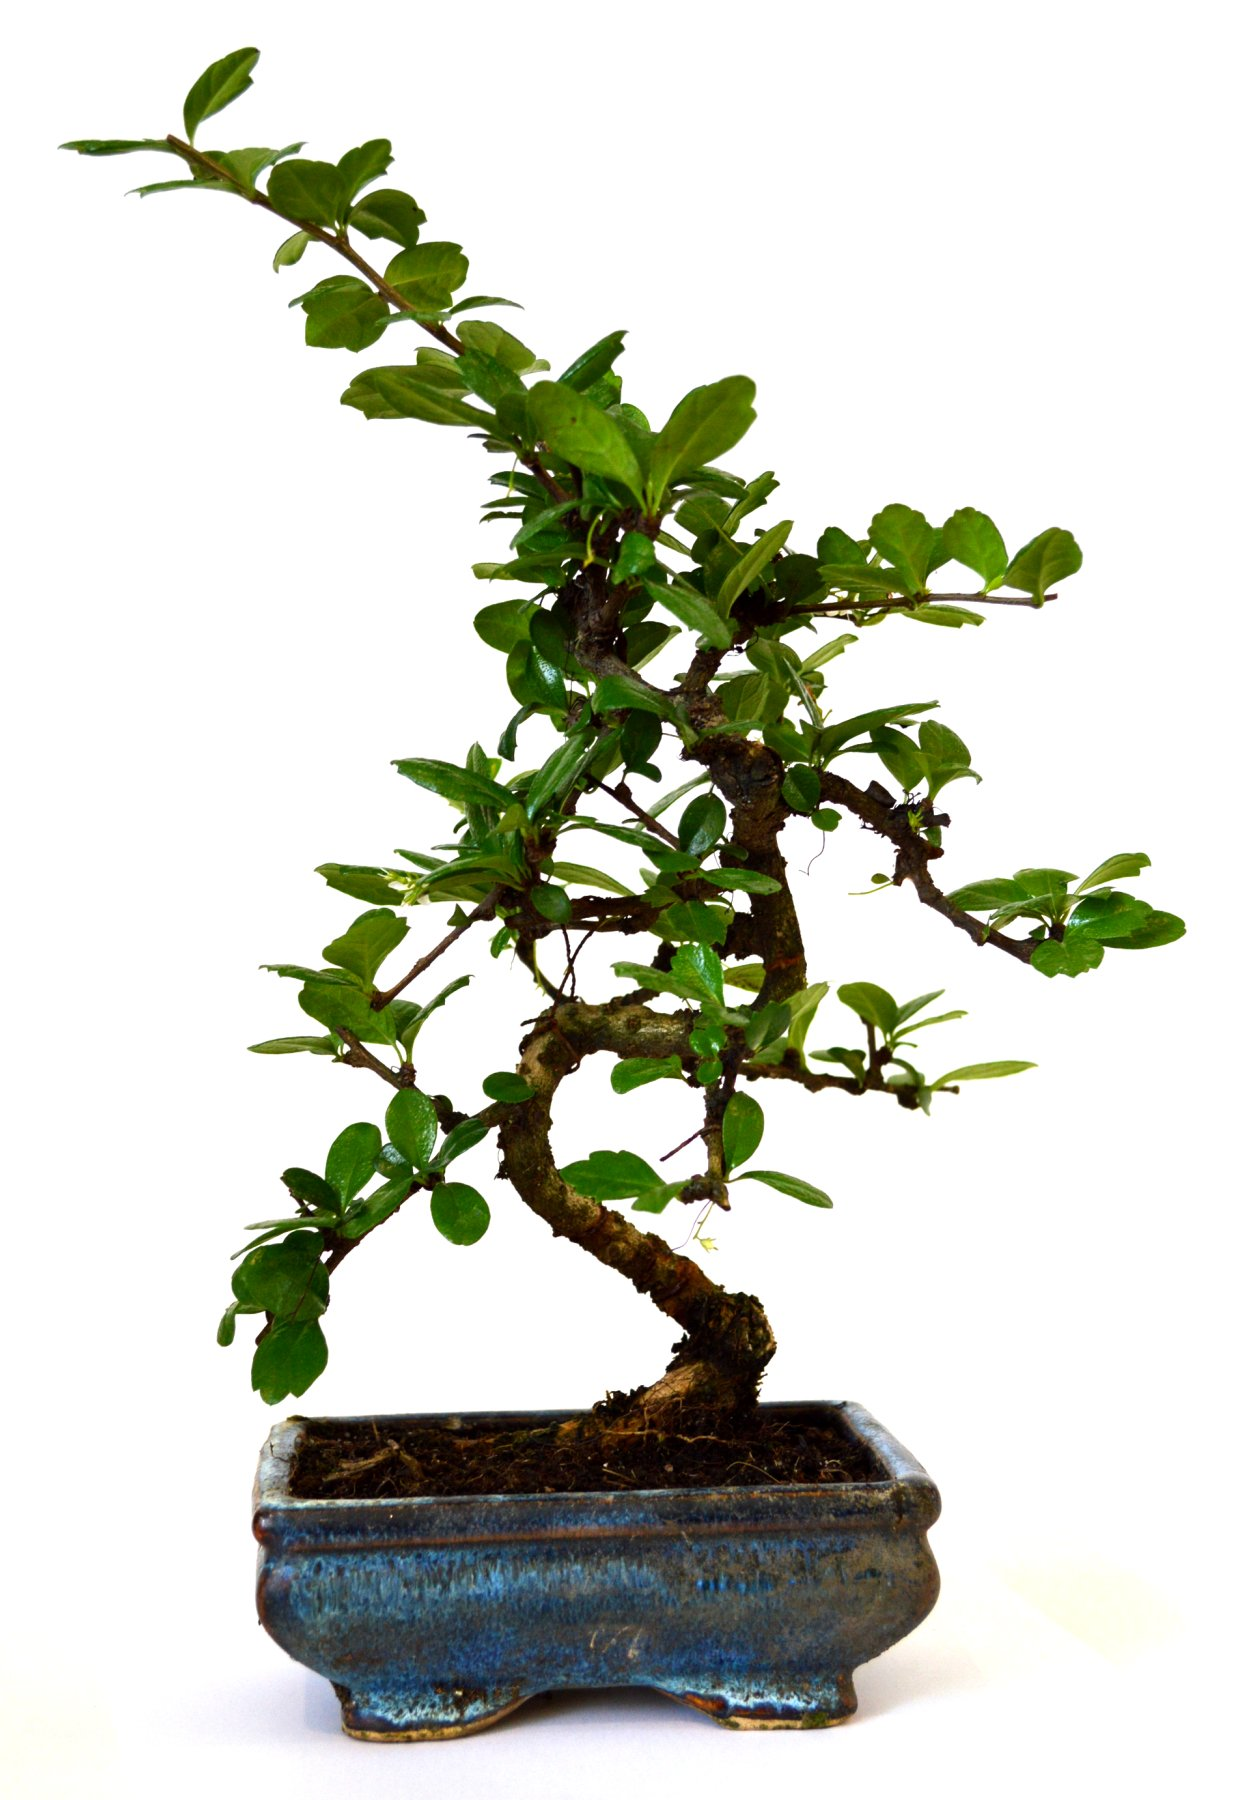 9GreenBox - Fukien Tea Bonsai with 6'' Ceramic Pot by 9GreenBox.com